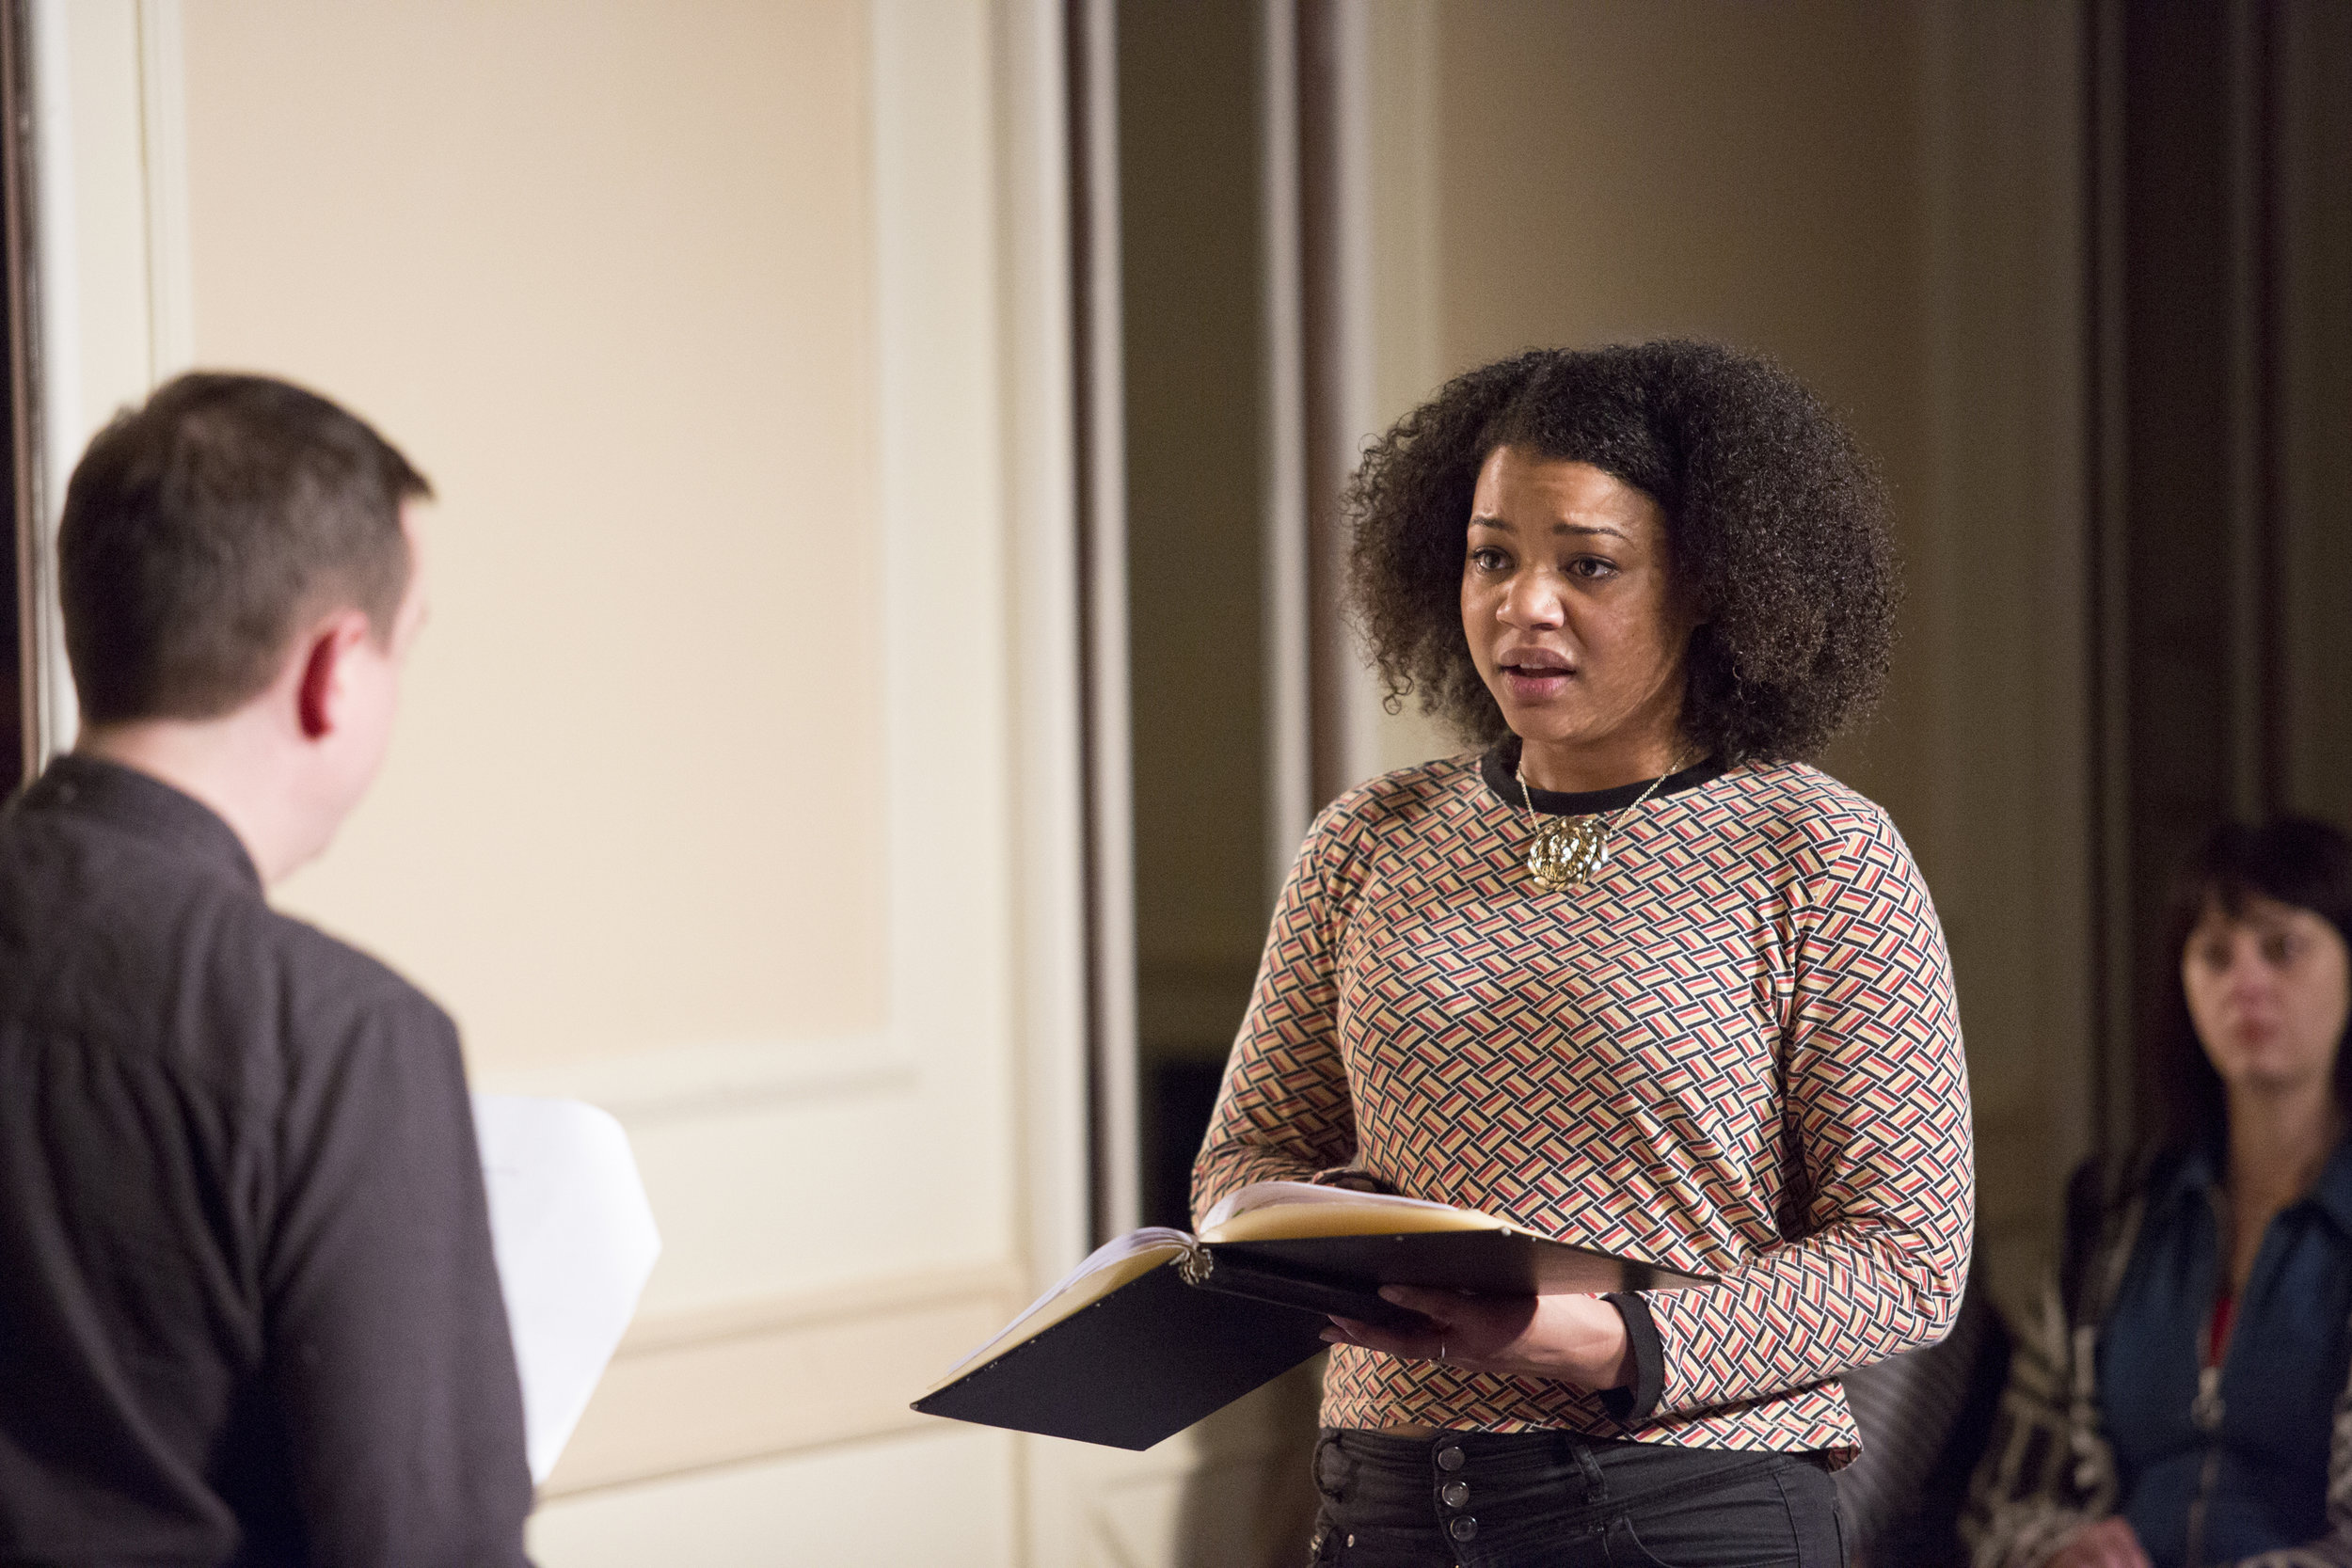 Jessica Hayles in a staged reading at Dirty Gifted & Welsh. Photo Credit: Dan Green.